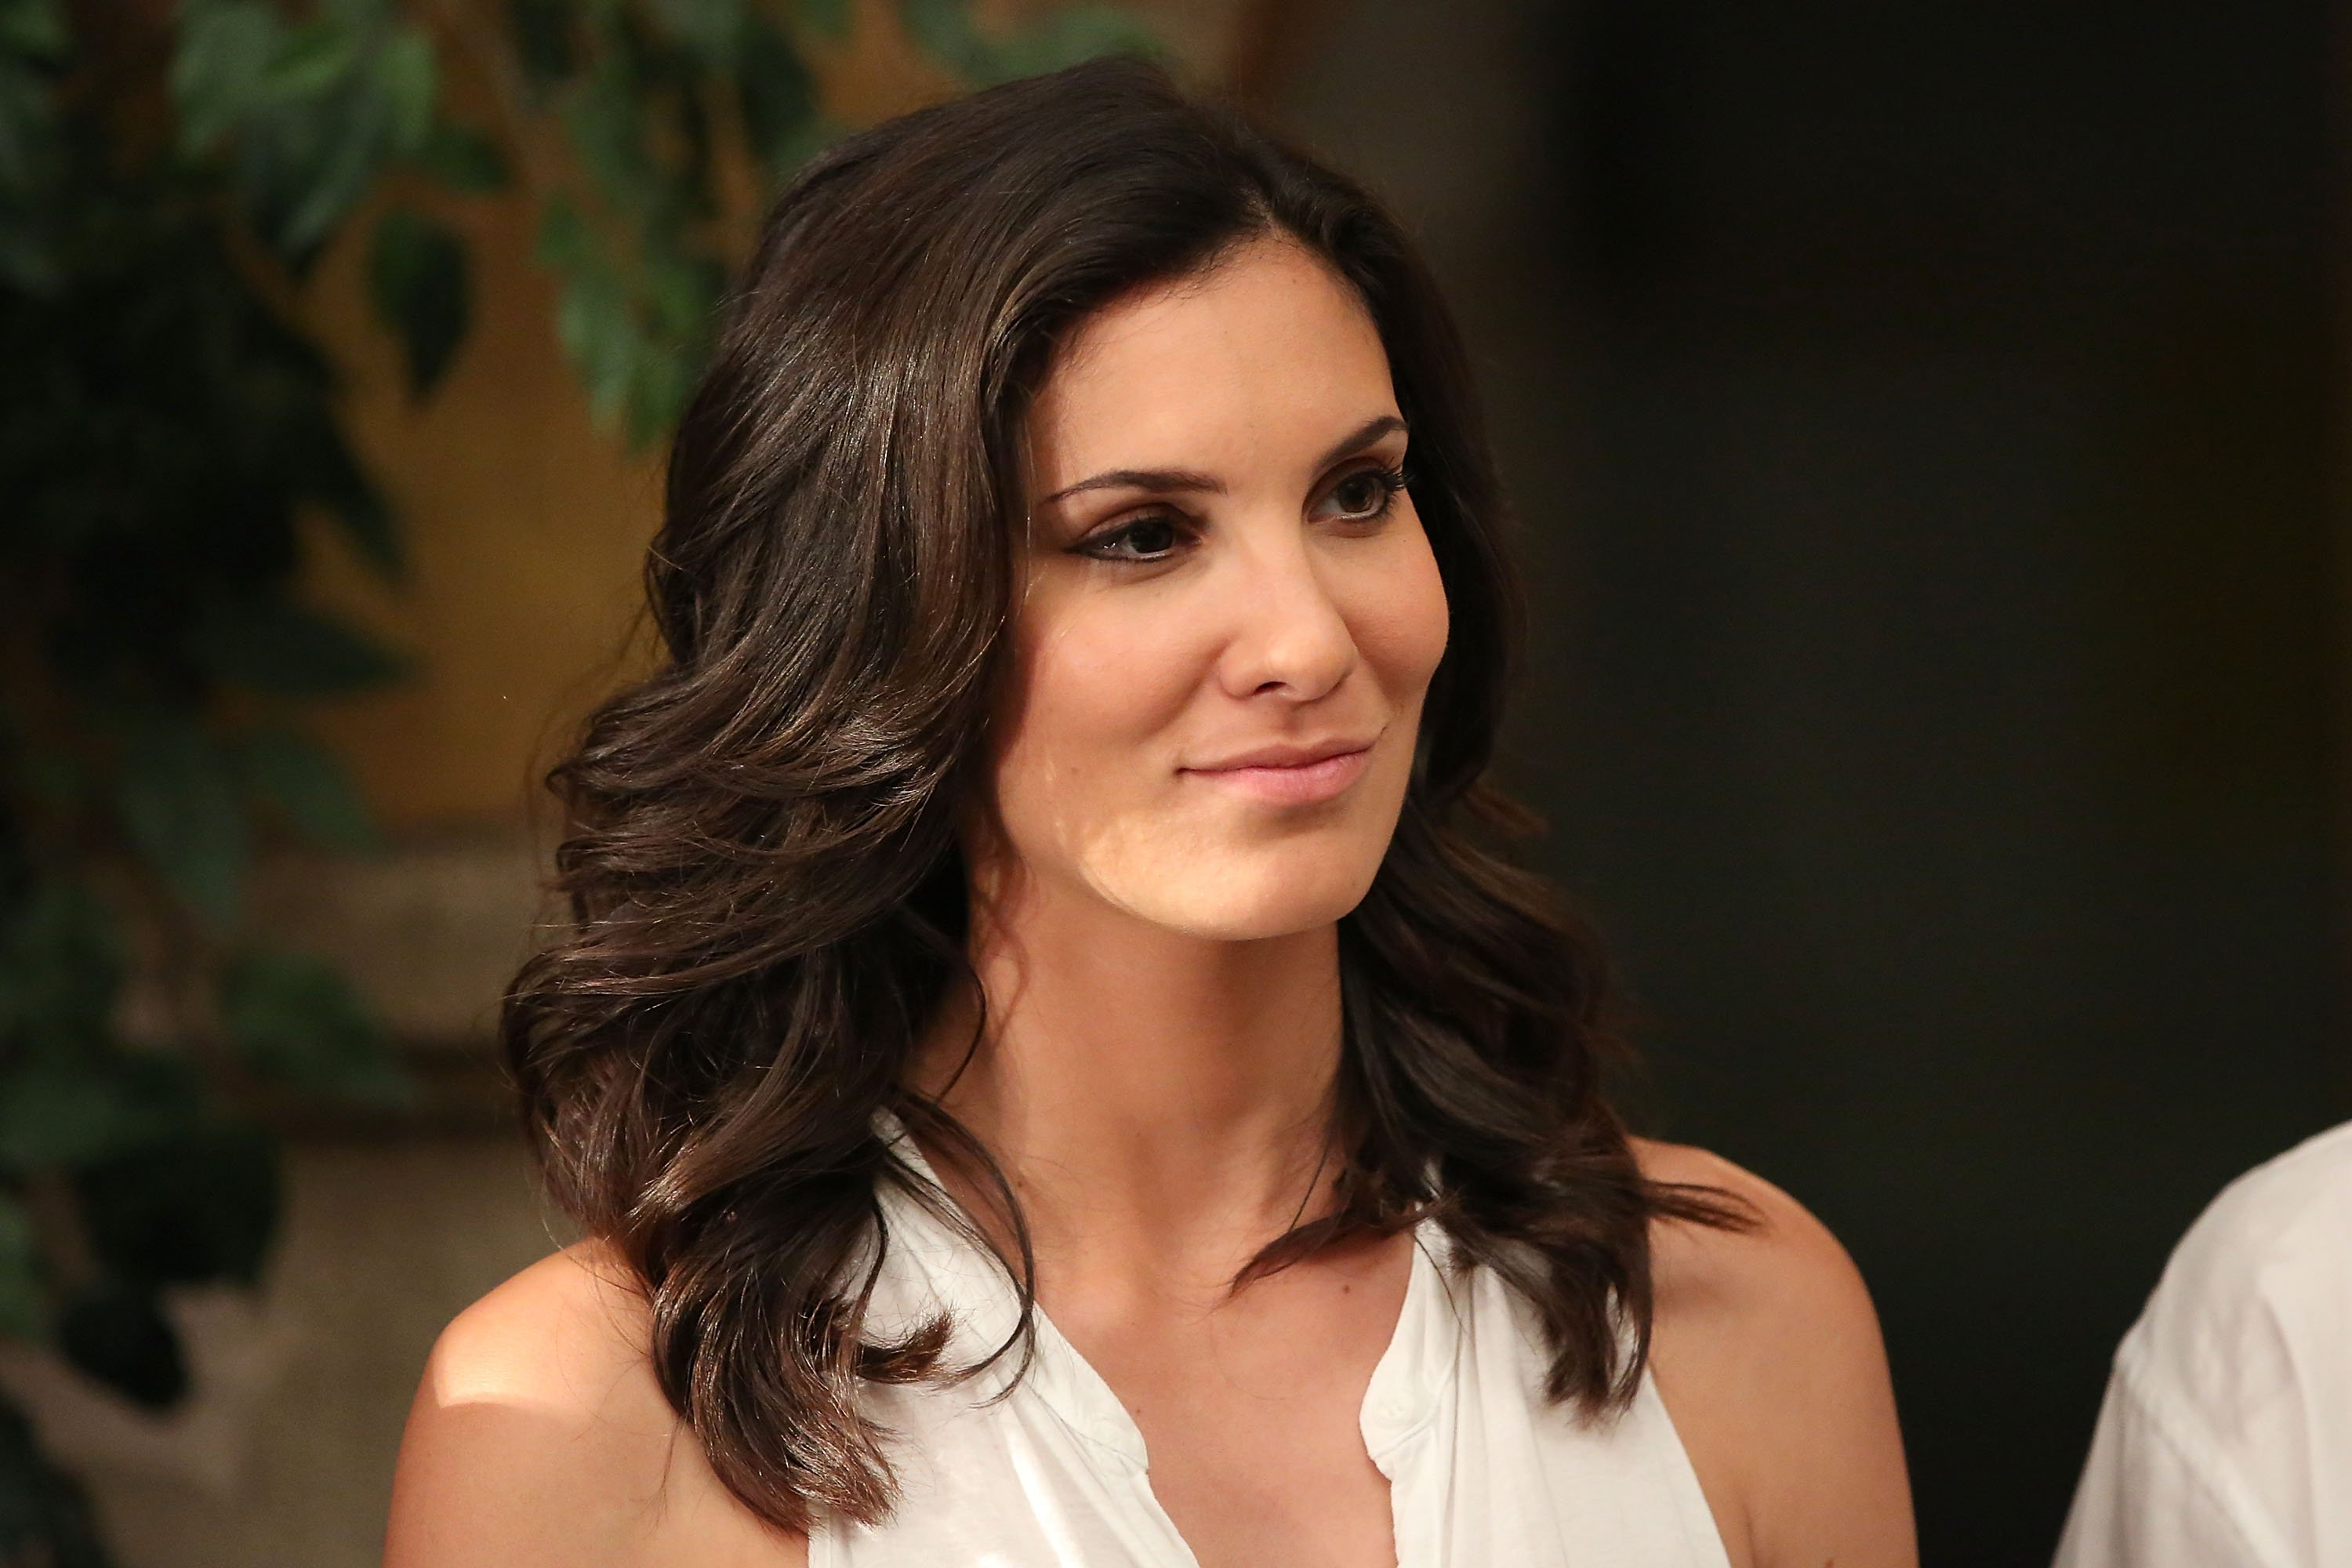 """Daniela Ruah attends the """"NCIS: Los Angeles"""" 100th Episode Cake-Cutting Ceremony at Paramount Studios on August 23, 2013 in Hollywood, California 